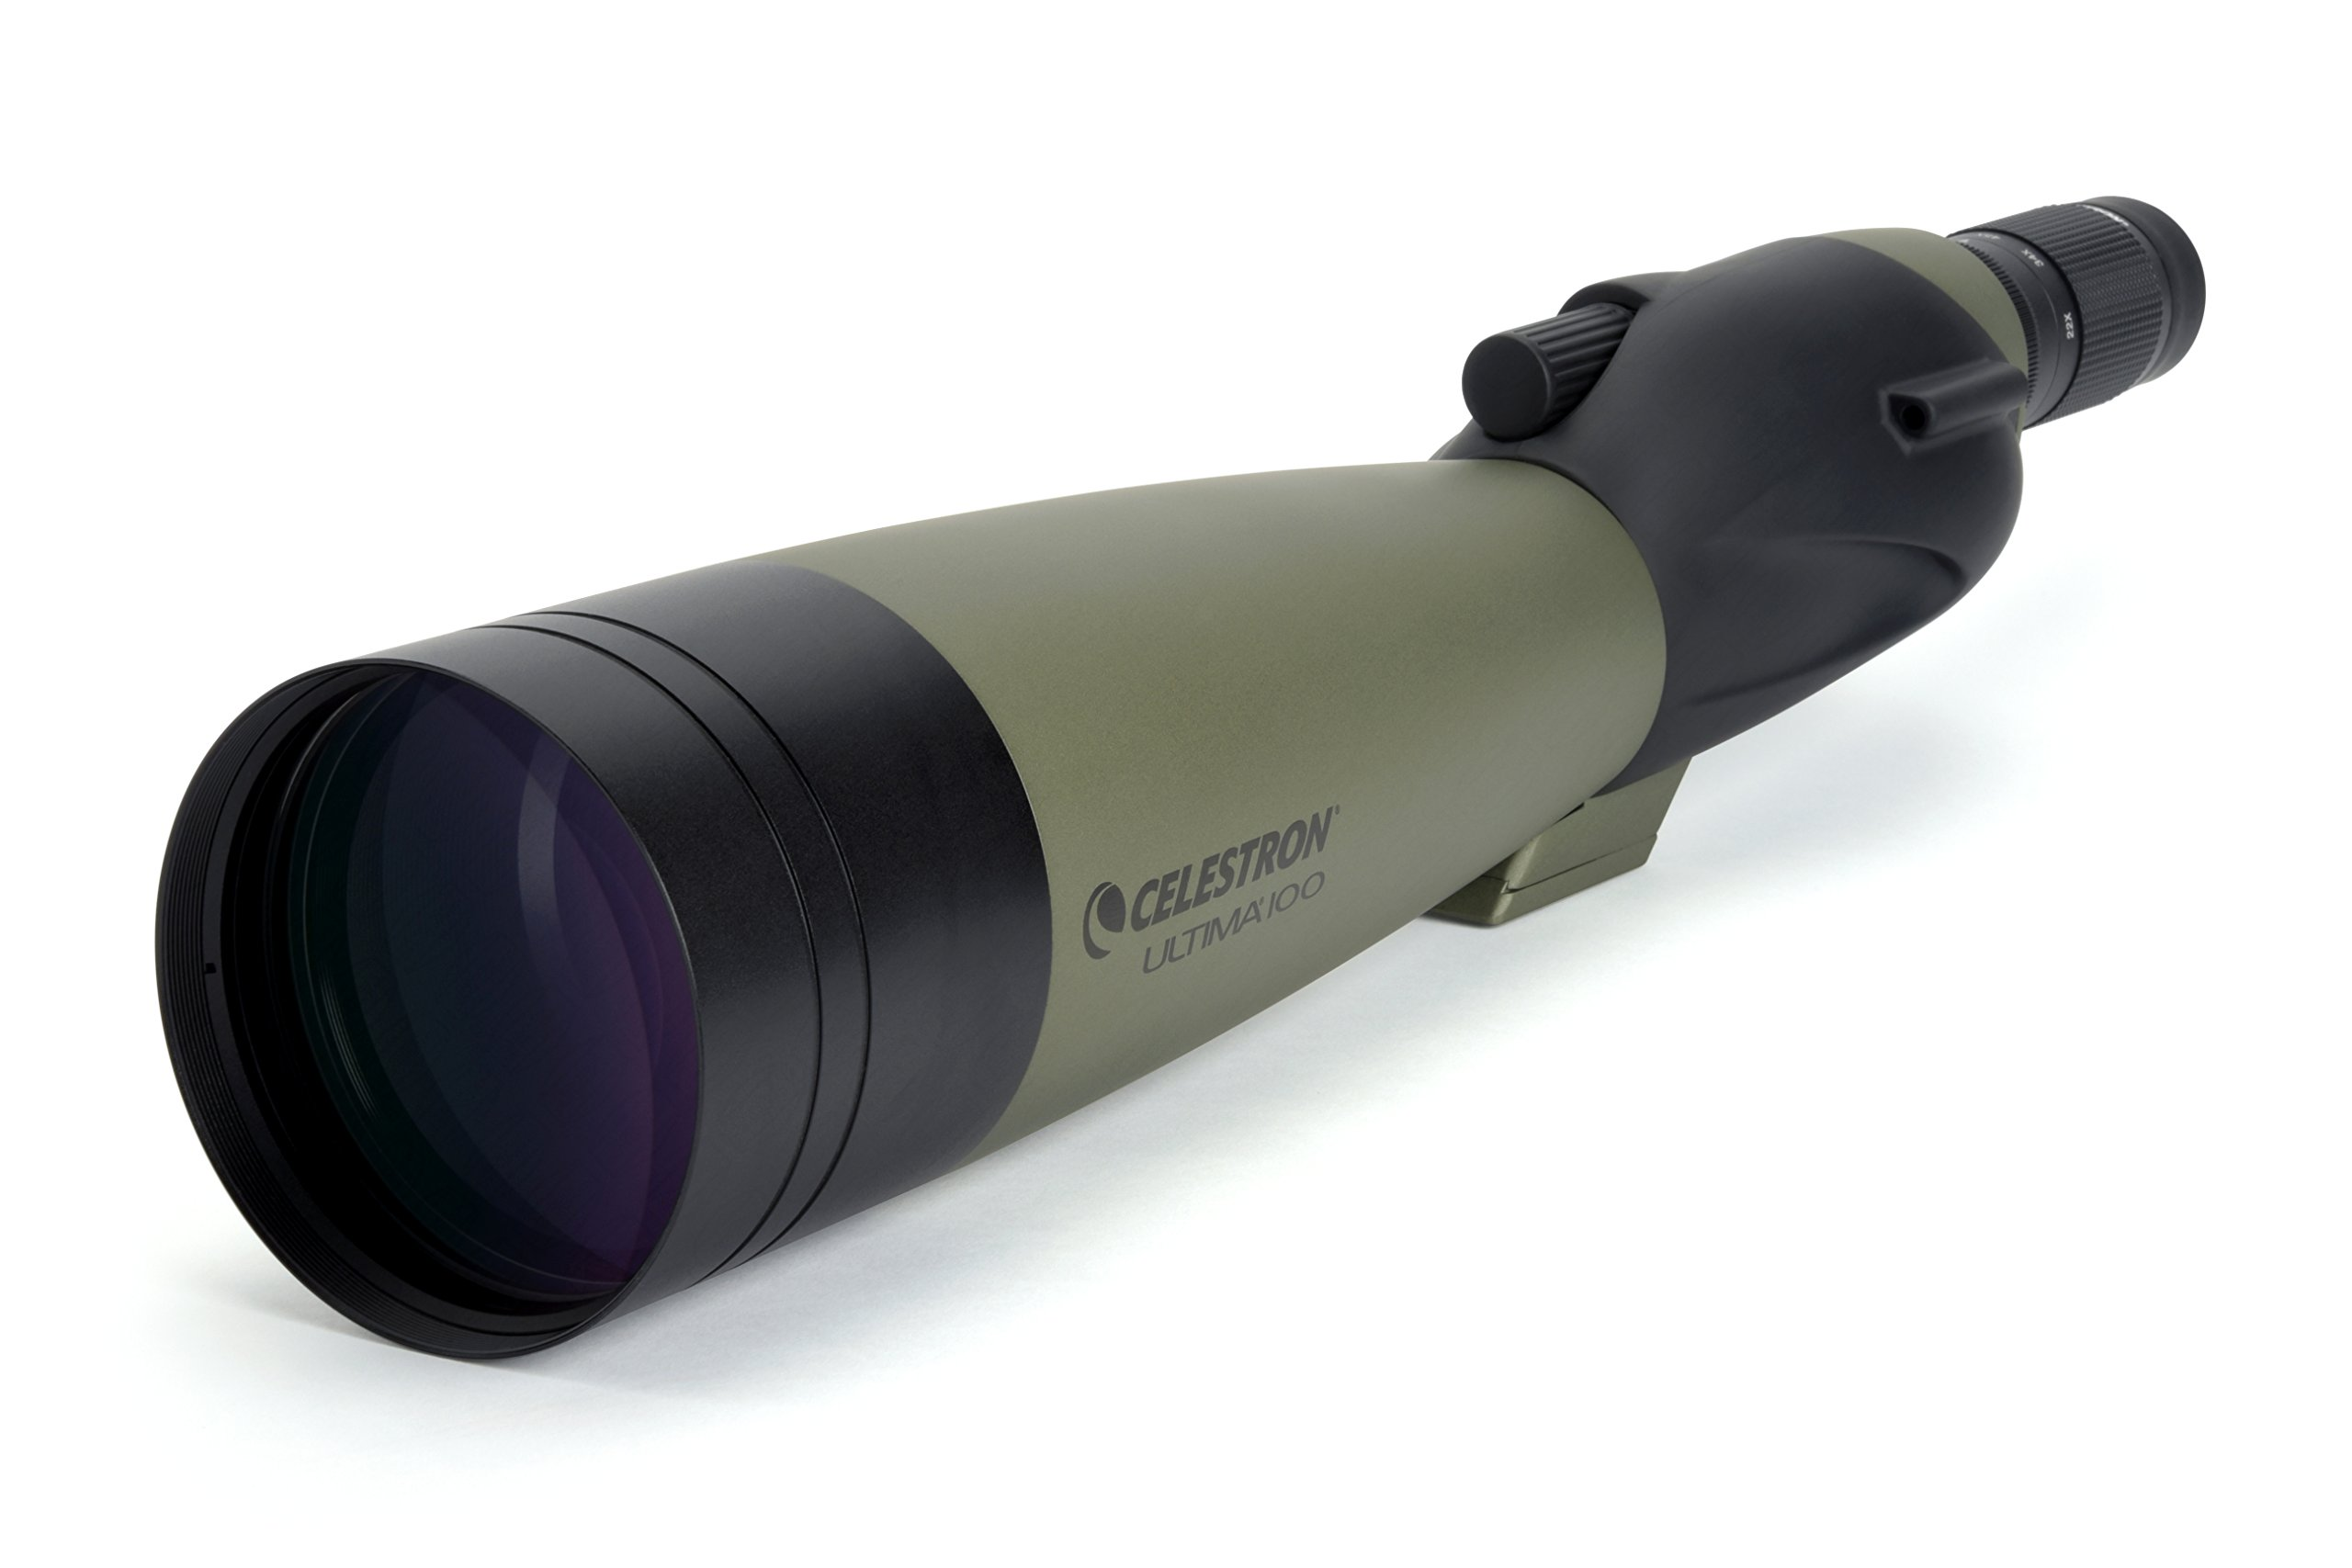 Celestron Ultima Gradsichtig Spotting Scope